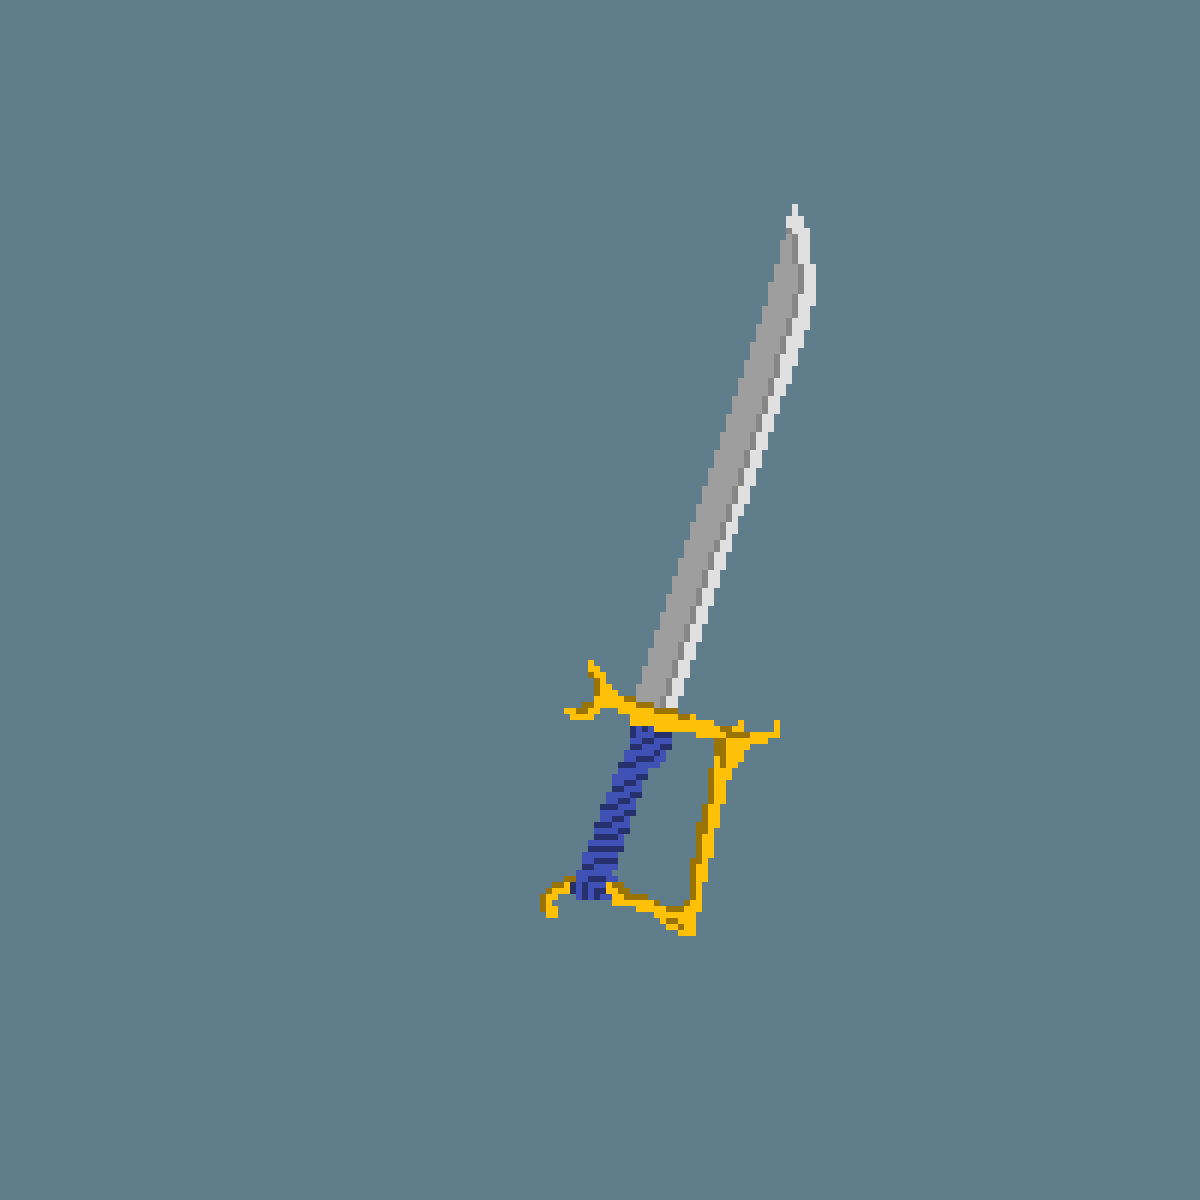 main-image-mega plain navy sword of the sorts  by DomBomDom